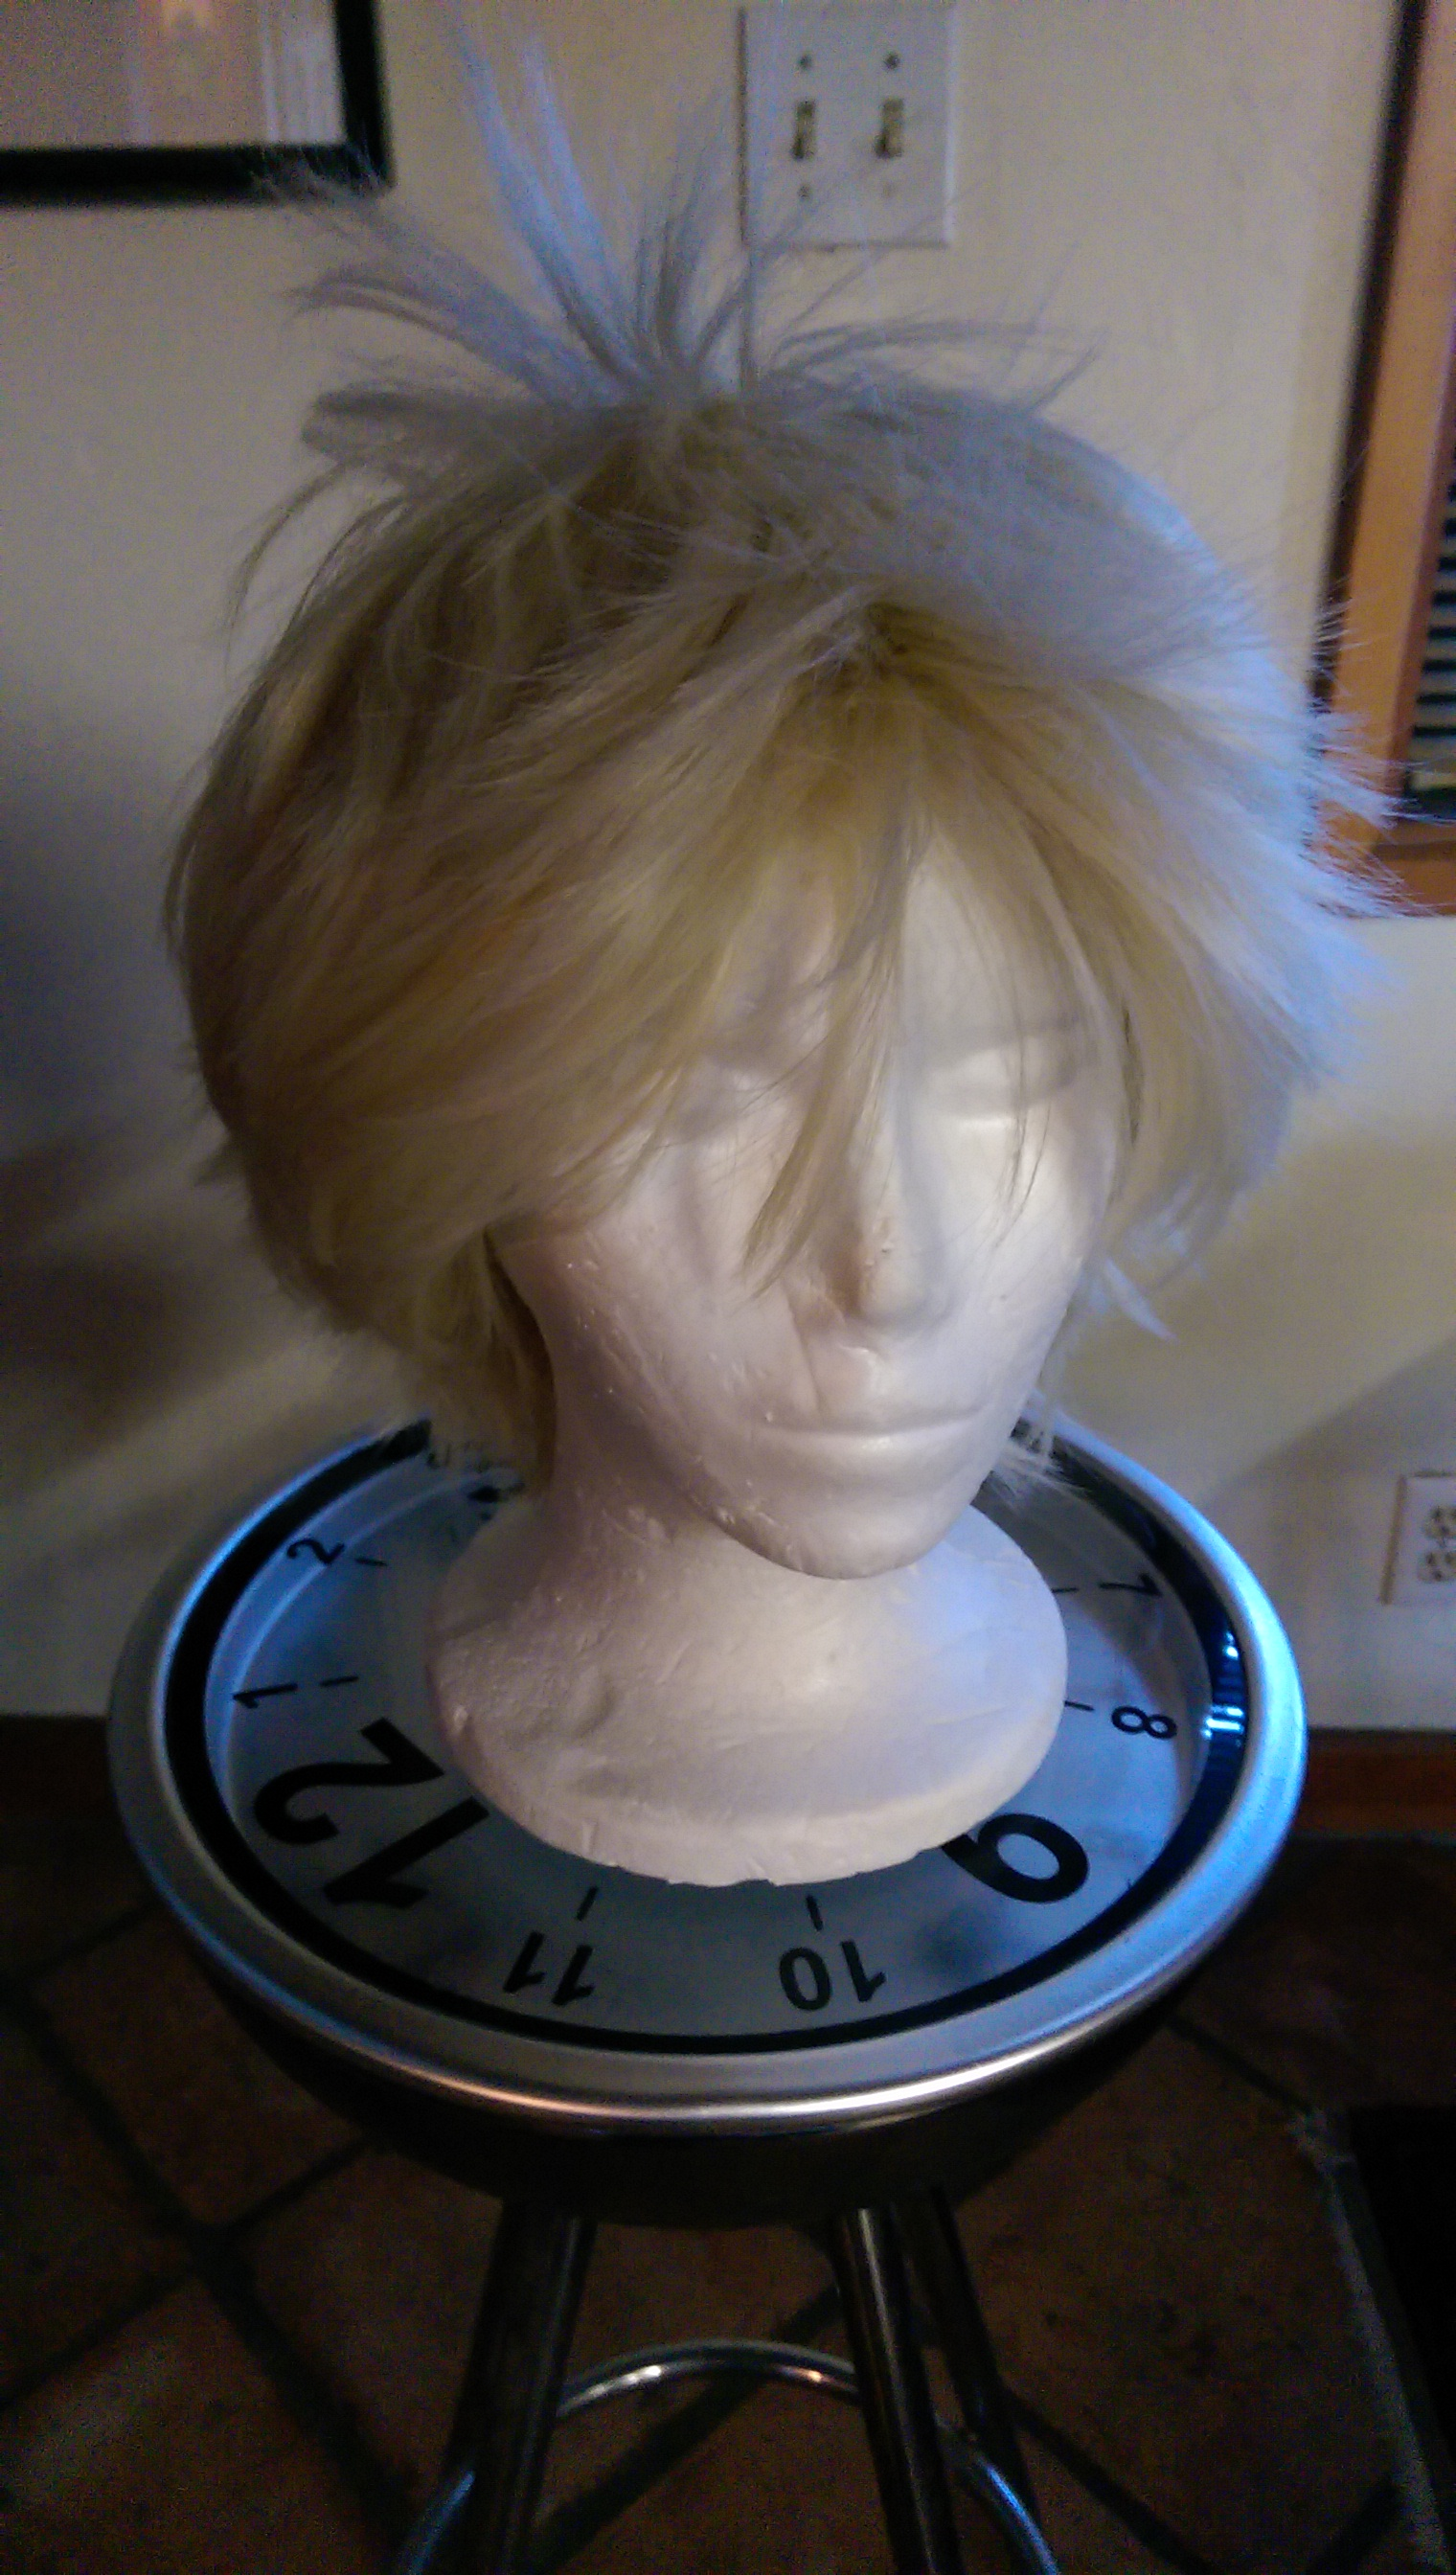 The next big challenge will be modifying this wig to match the War Doctor's hair. They don't look that similar right now, but I know the changes that need to be made.